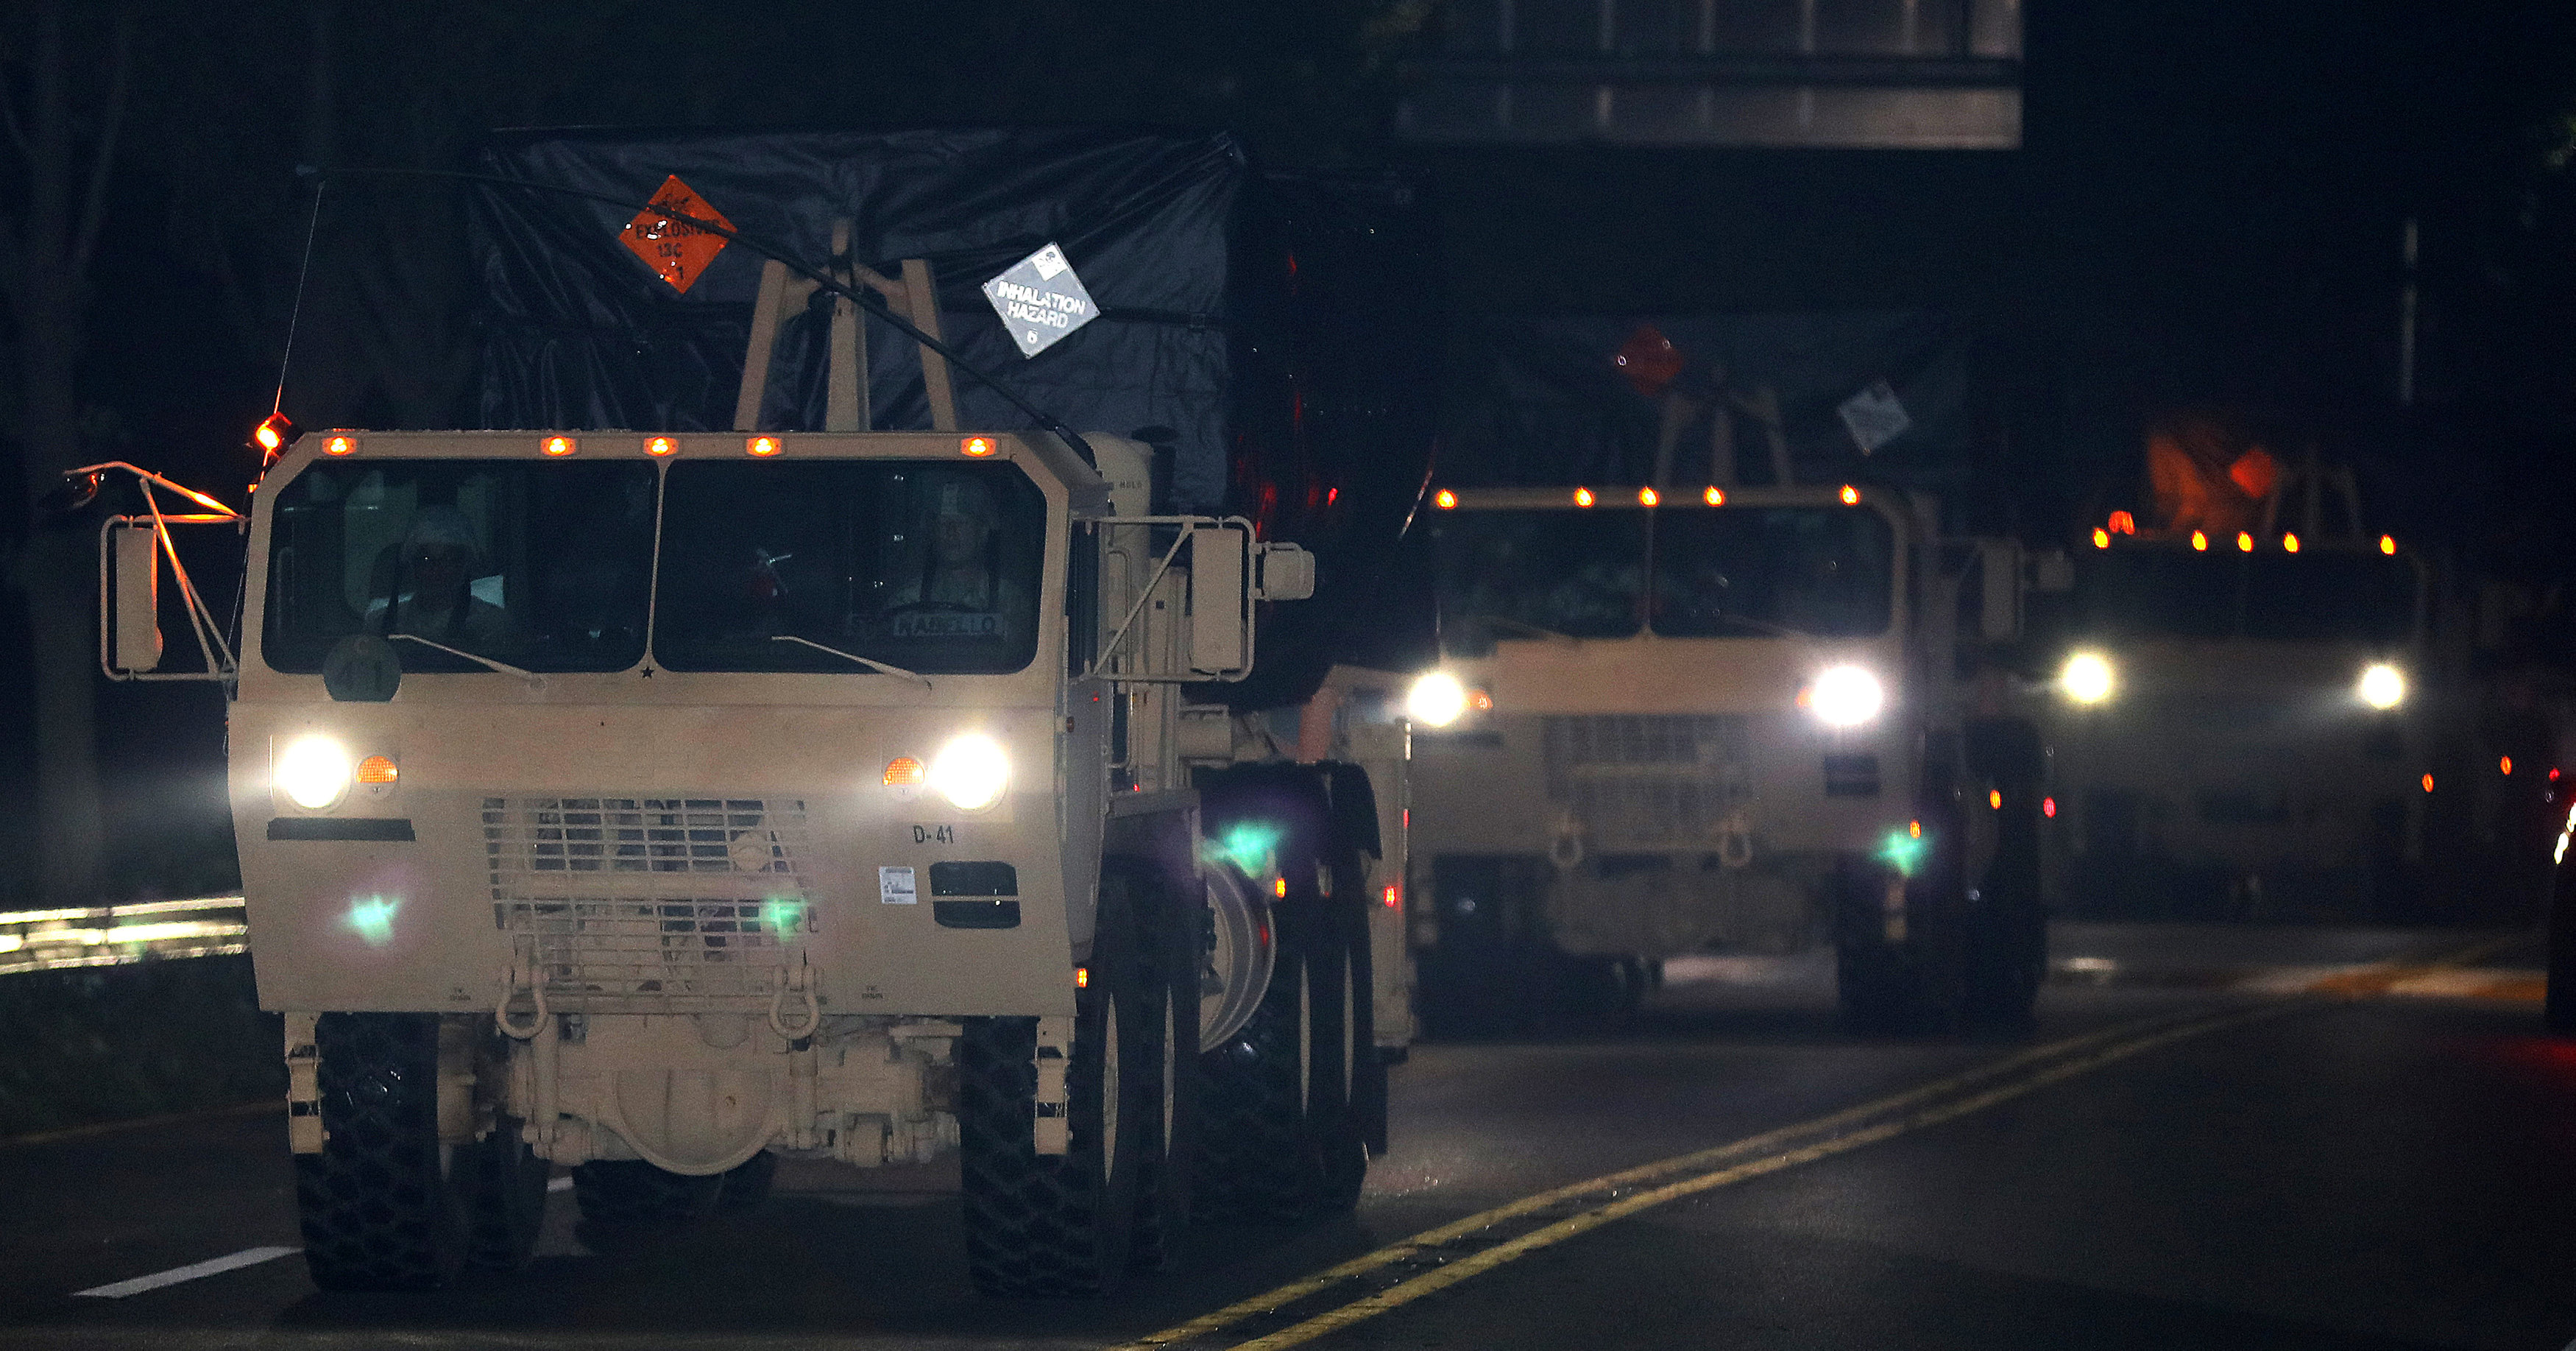 A part of a Terminal High Altitude Area Defense (THAAD) system travels as it heads for Seongju, near the Osan Air Base in Pyeongtaek, South Korea on Sept. 7, 2017. (Oh Jang-hwan/News1 via REUTERS)